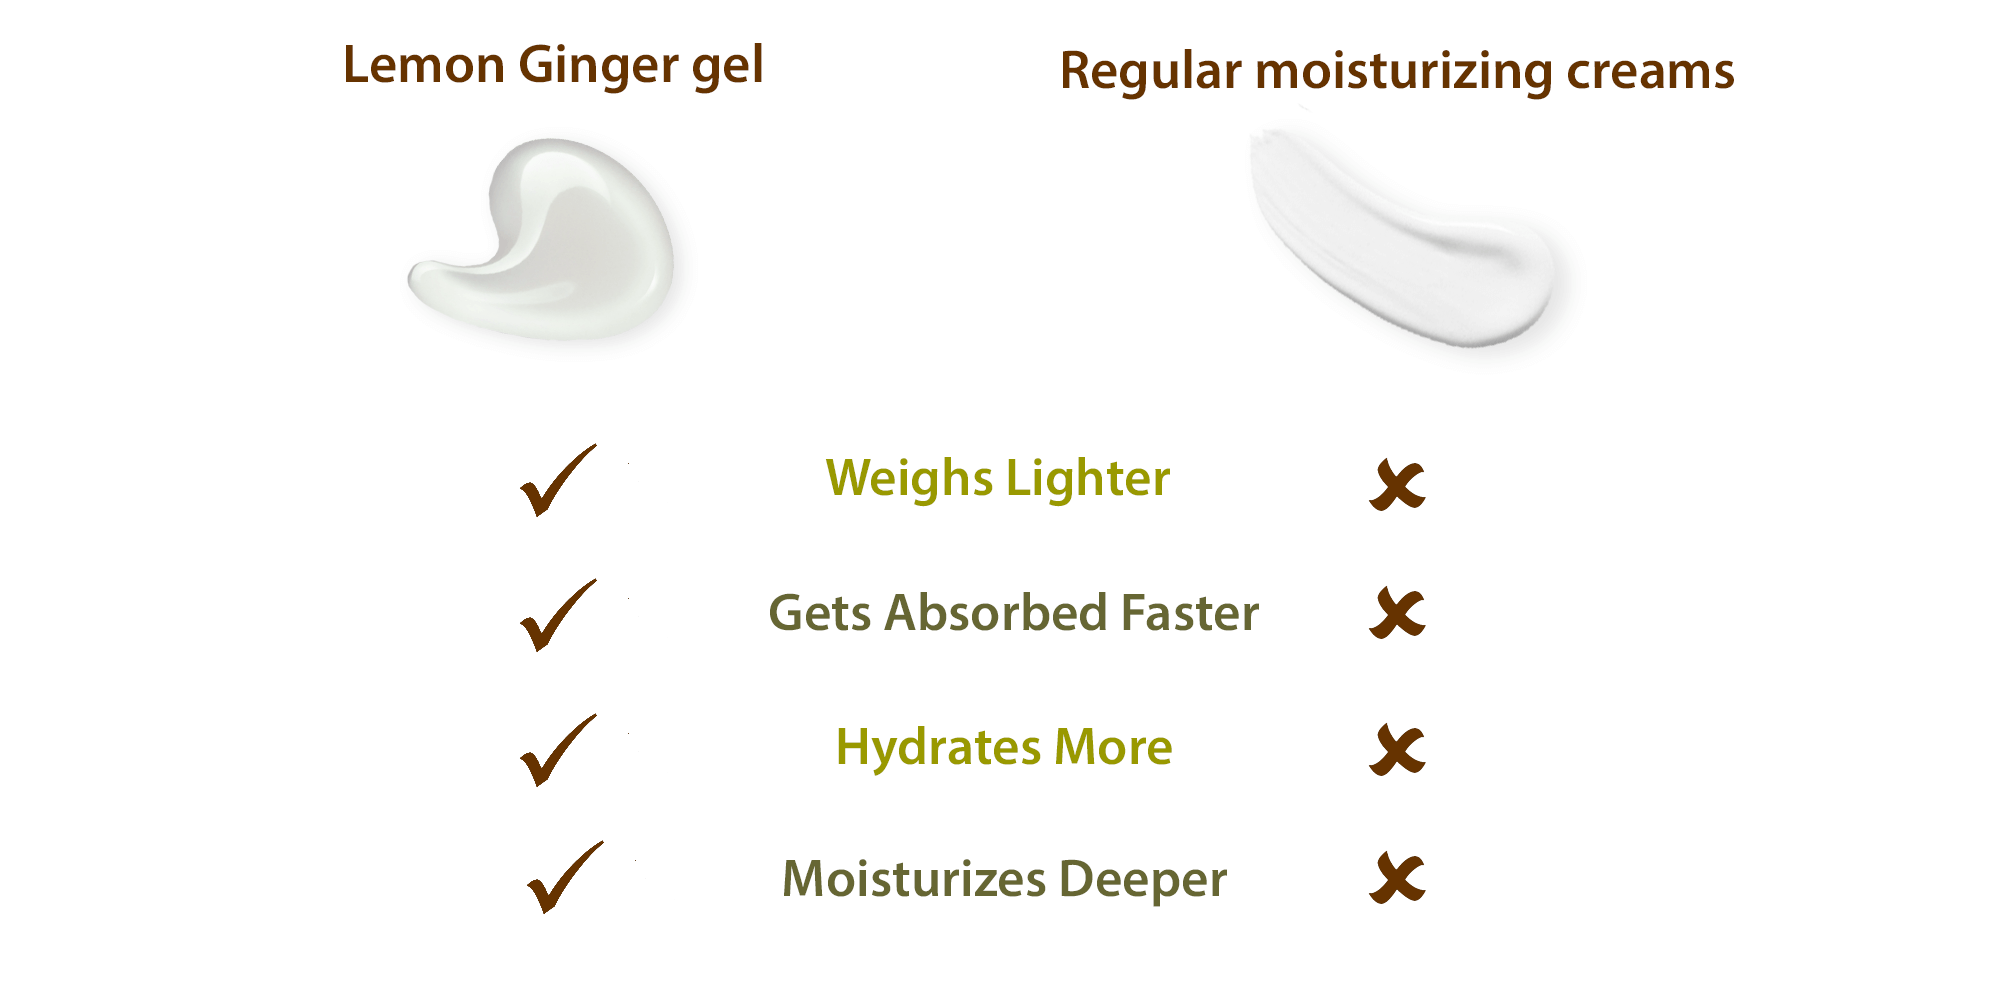 Ajara Lemon Ginger Moisture Gel for sensitive, acne-prone skin